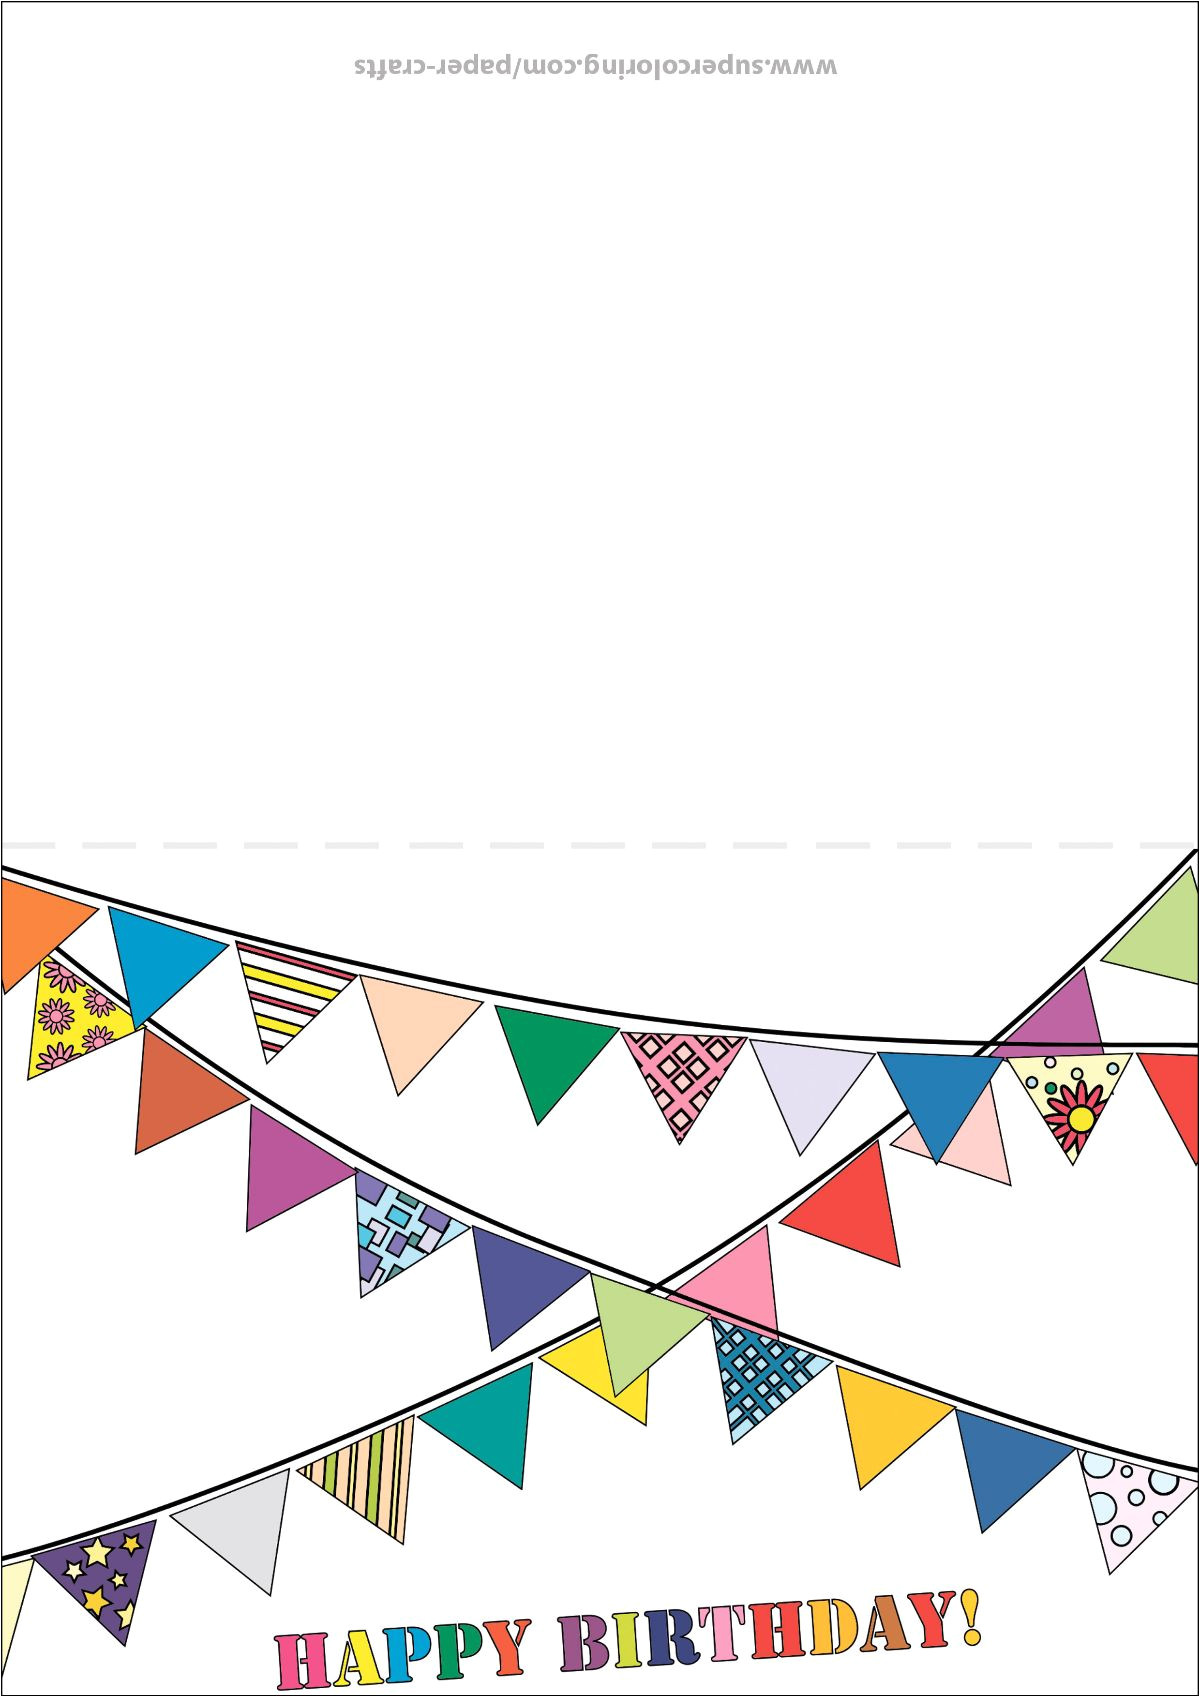 happy birthday card with bunting flags paper craft jpg